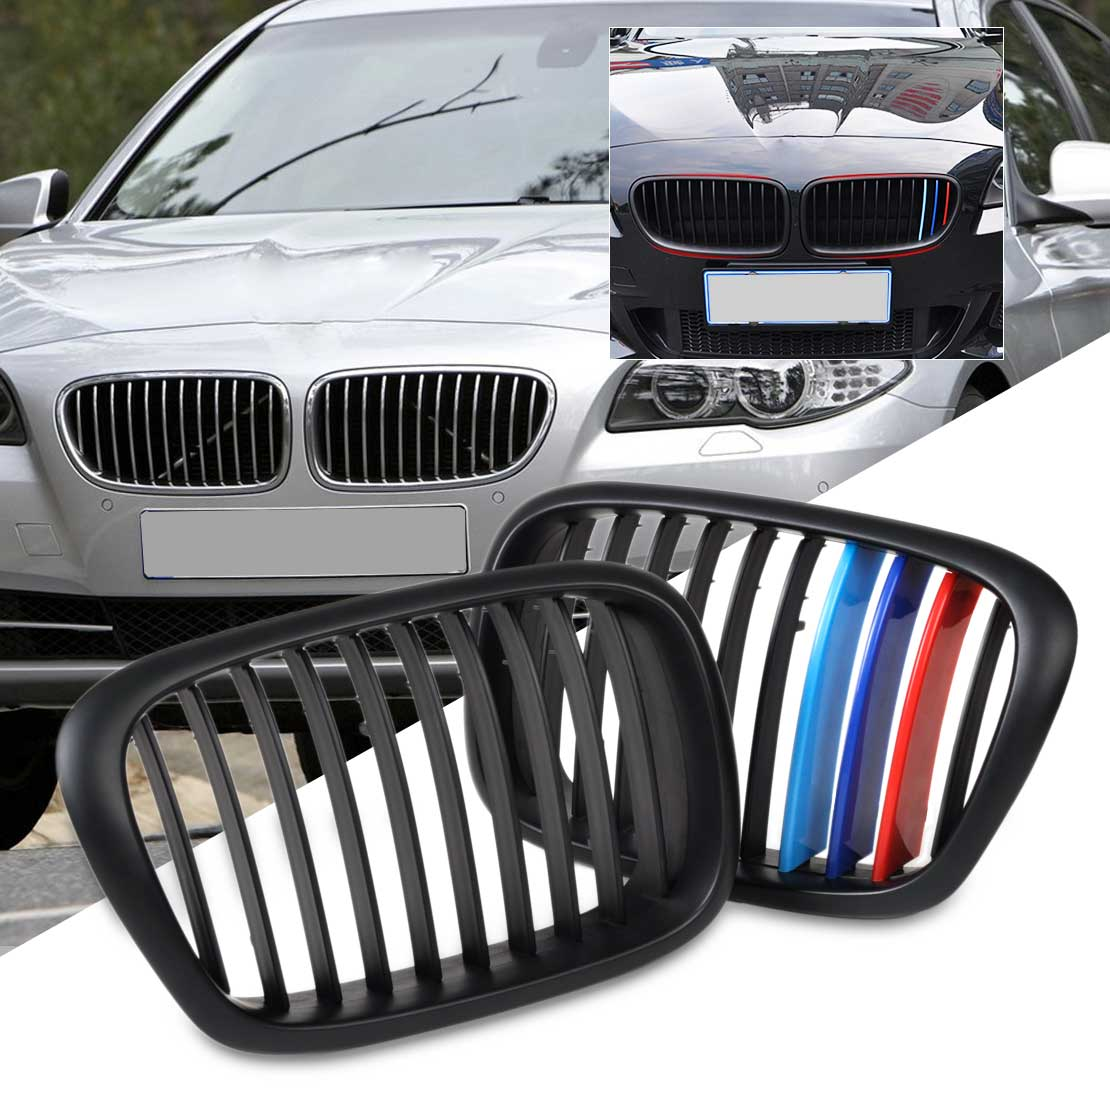 beler 2x New Front Gloss Wide Kidney Grille Grill + 3 Pieces Colored Adhesive Tape set for BMW 5 Series E39 1995-2002 2003 2004 front euro kidney grille matte black for bmw e39 5 series 2001 2003